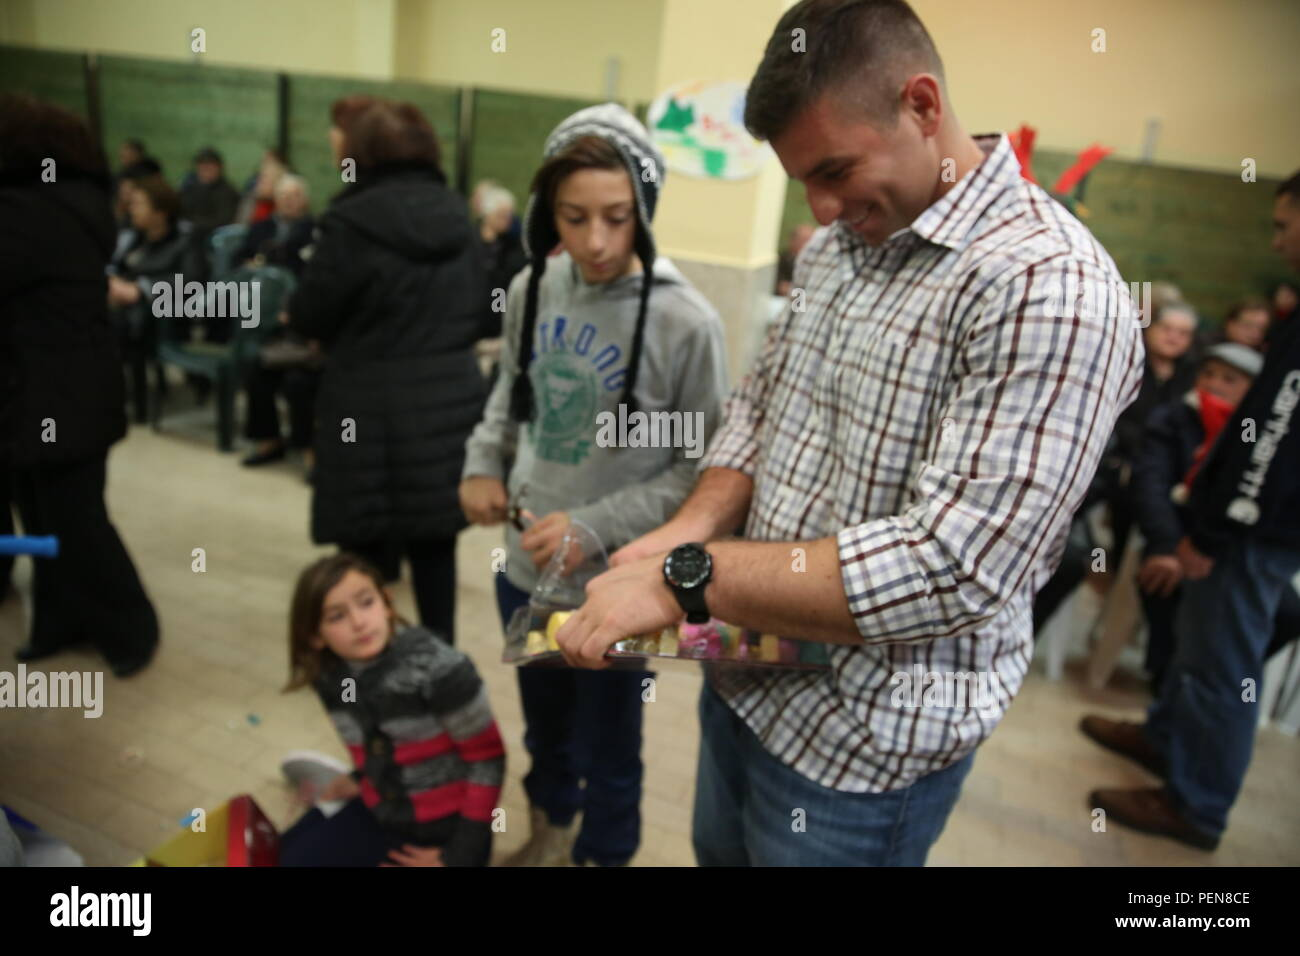 Staff Sgt. Ryan Nikzad opens a gift for a girl during a Christmas party at the Giovanna Romeo Orphanage, Dec. 22, in Belpasso, Italy. More than 30 Marines and sailors with Special-Purpose Marine Air-Ground Task Force Crisis Response-Africa, participated in the event, where they also donated food and toys to the orphanage, sang Christmas carols and interacted with the children. Stock Photo